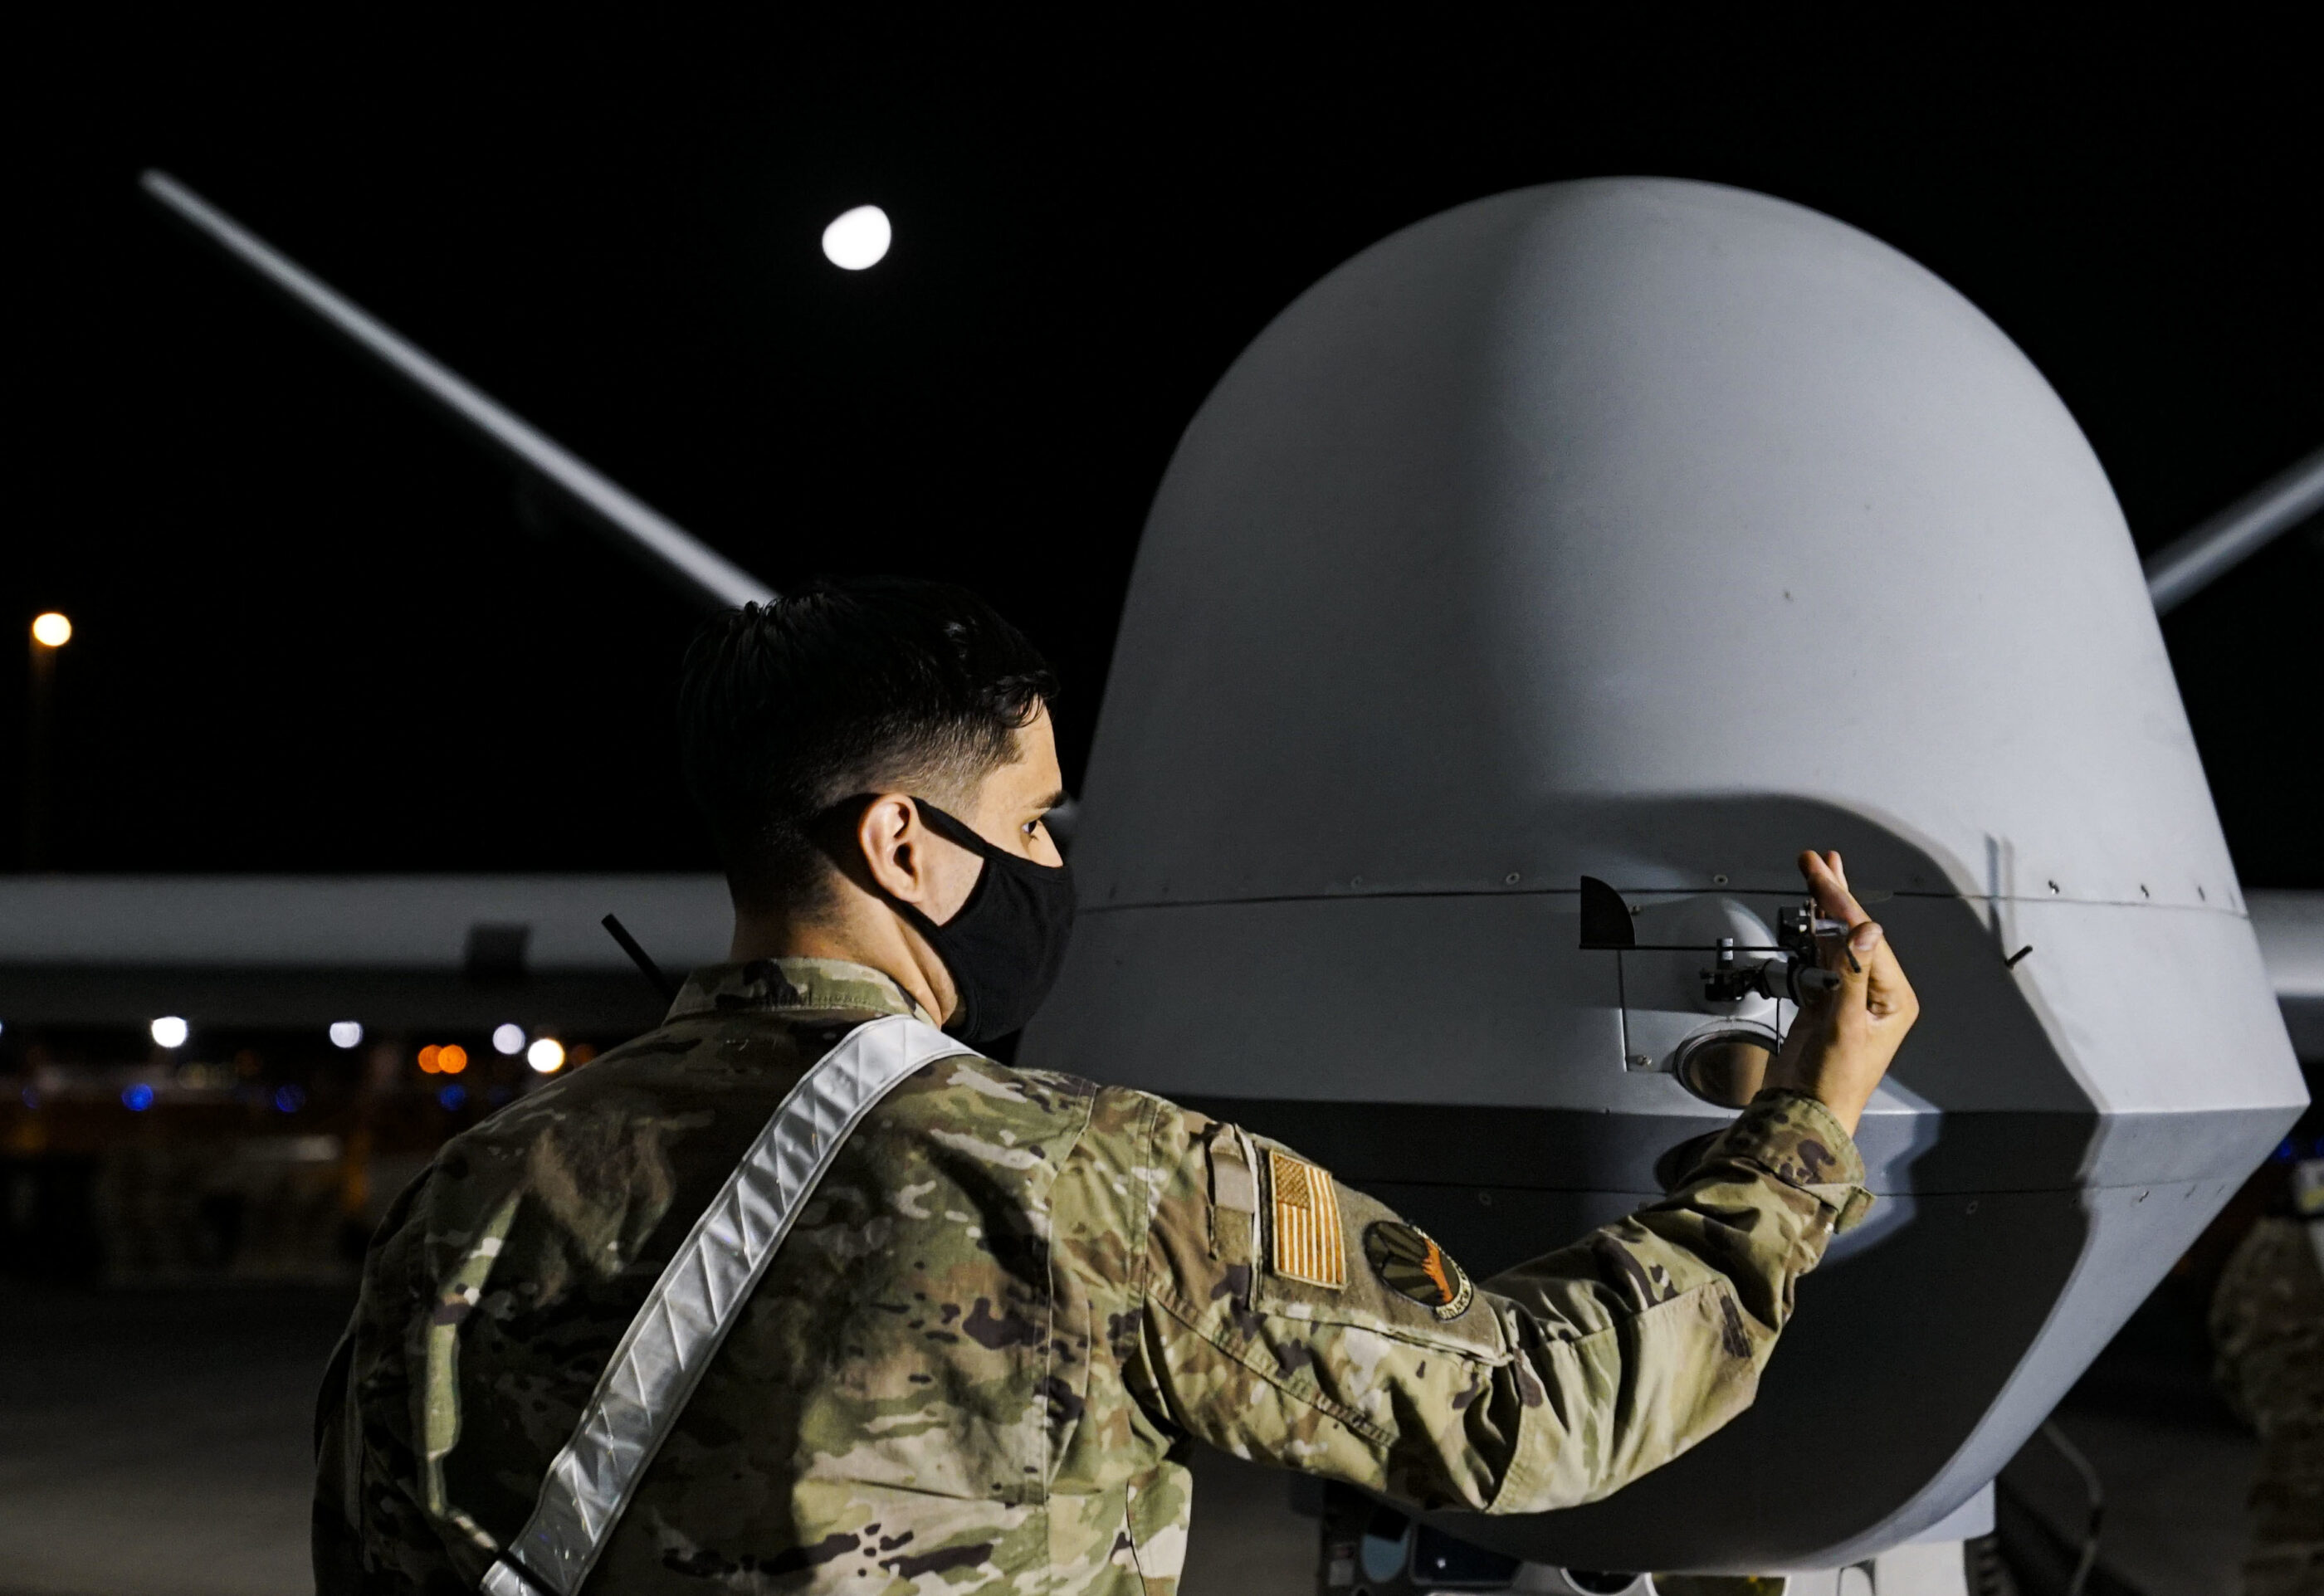 Pentagon activates MQ-9 attack drone to aid civil authorities in California